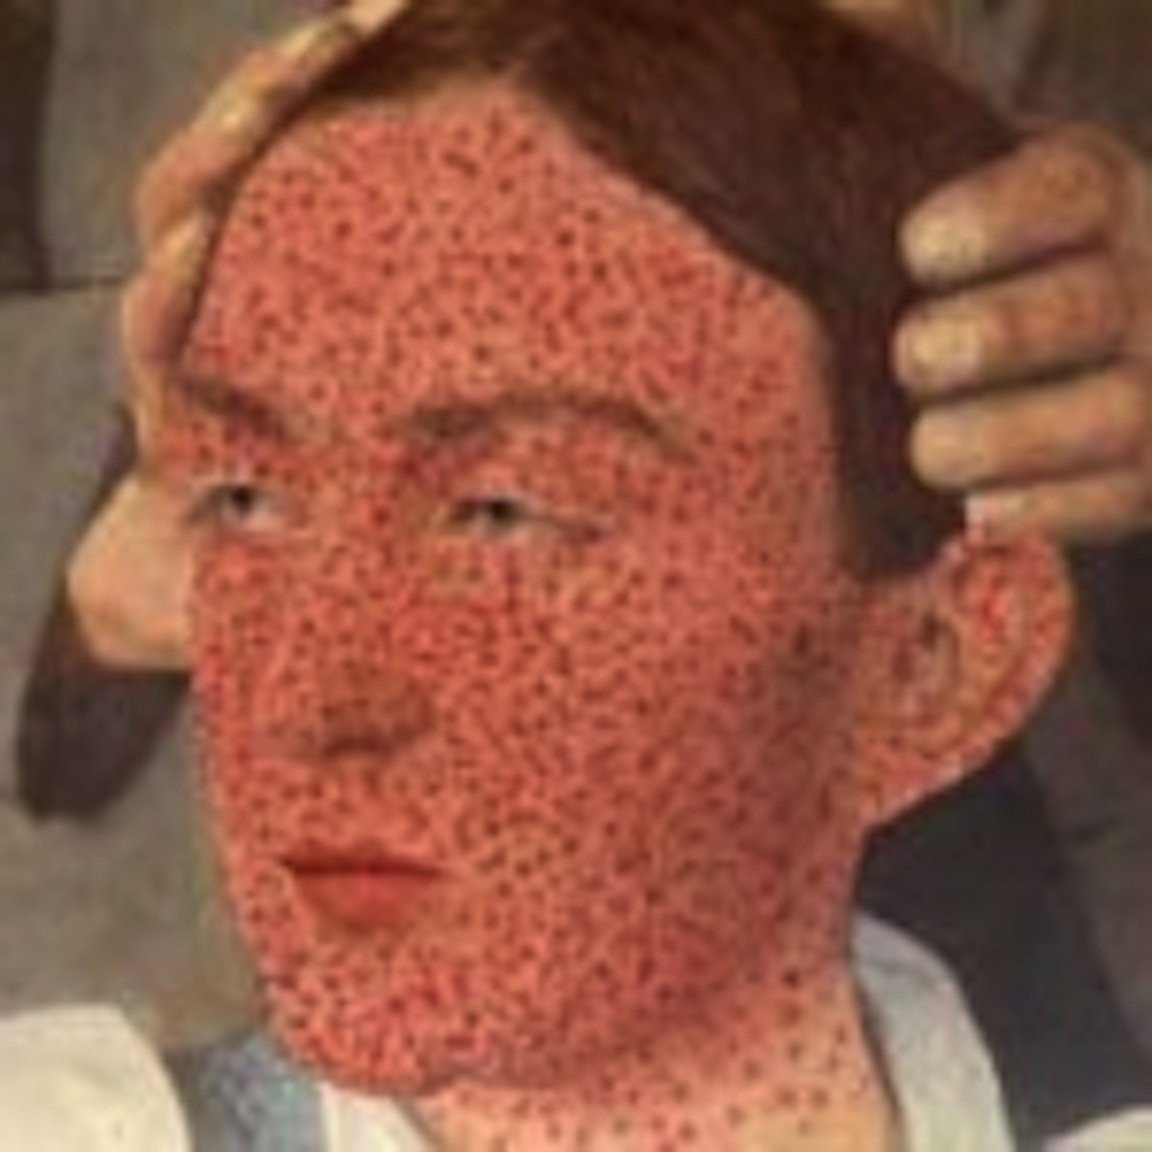 The Left Eye Is Red And There Is A Smallpox-like Lump In The Eye?